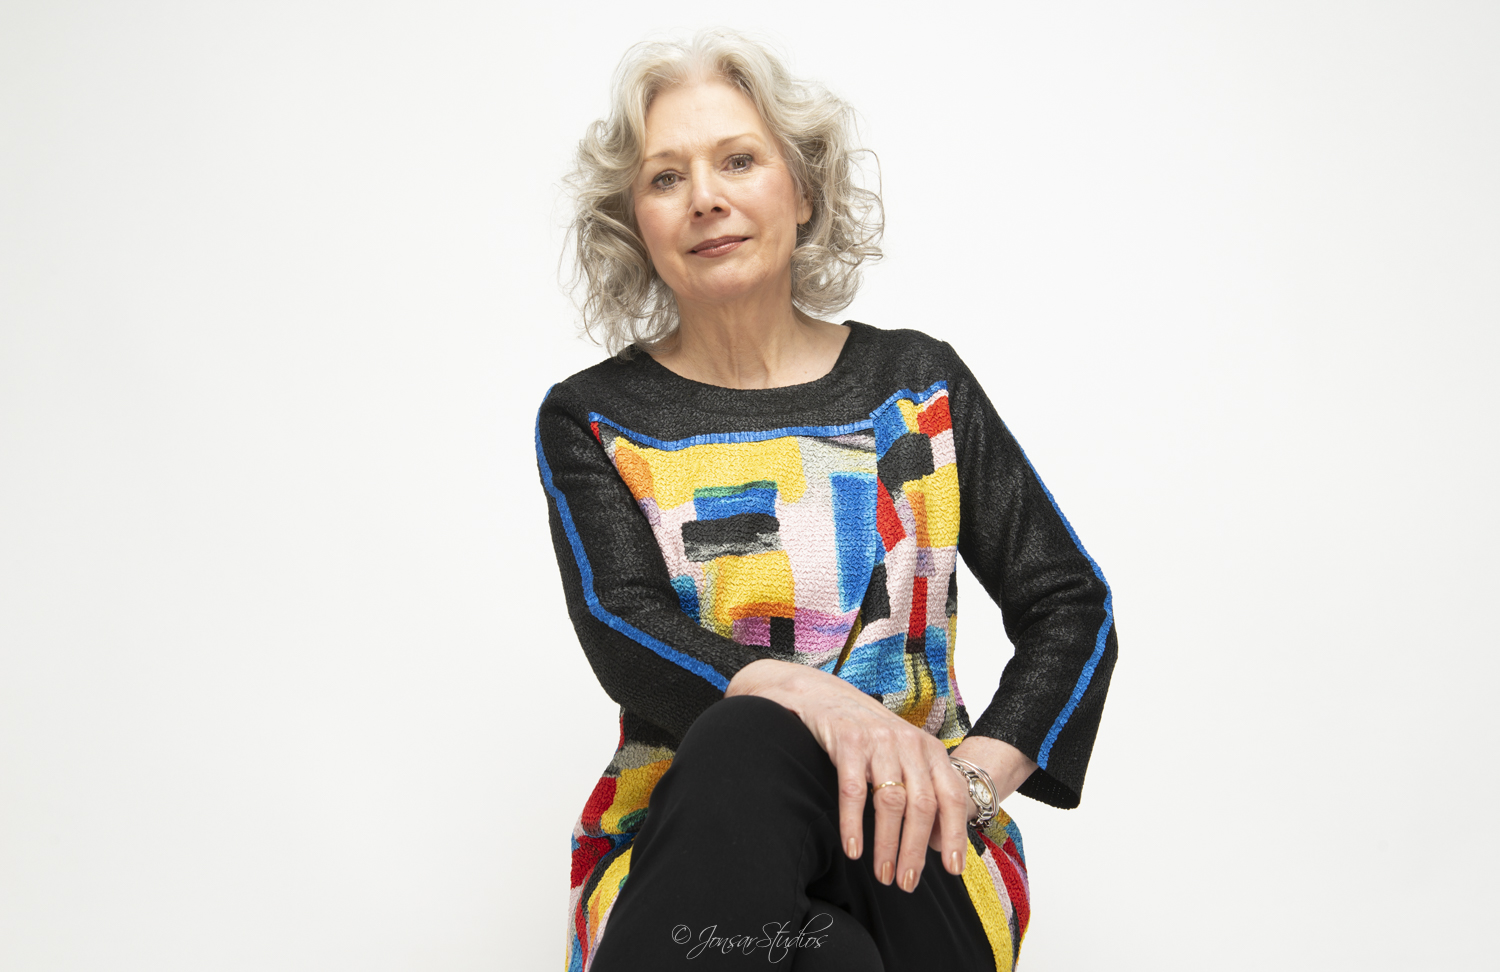 Kathryn Leigh Scott Portrait in Colorful Sweater